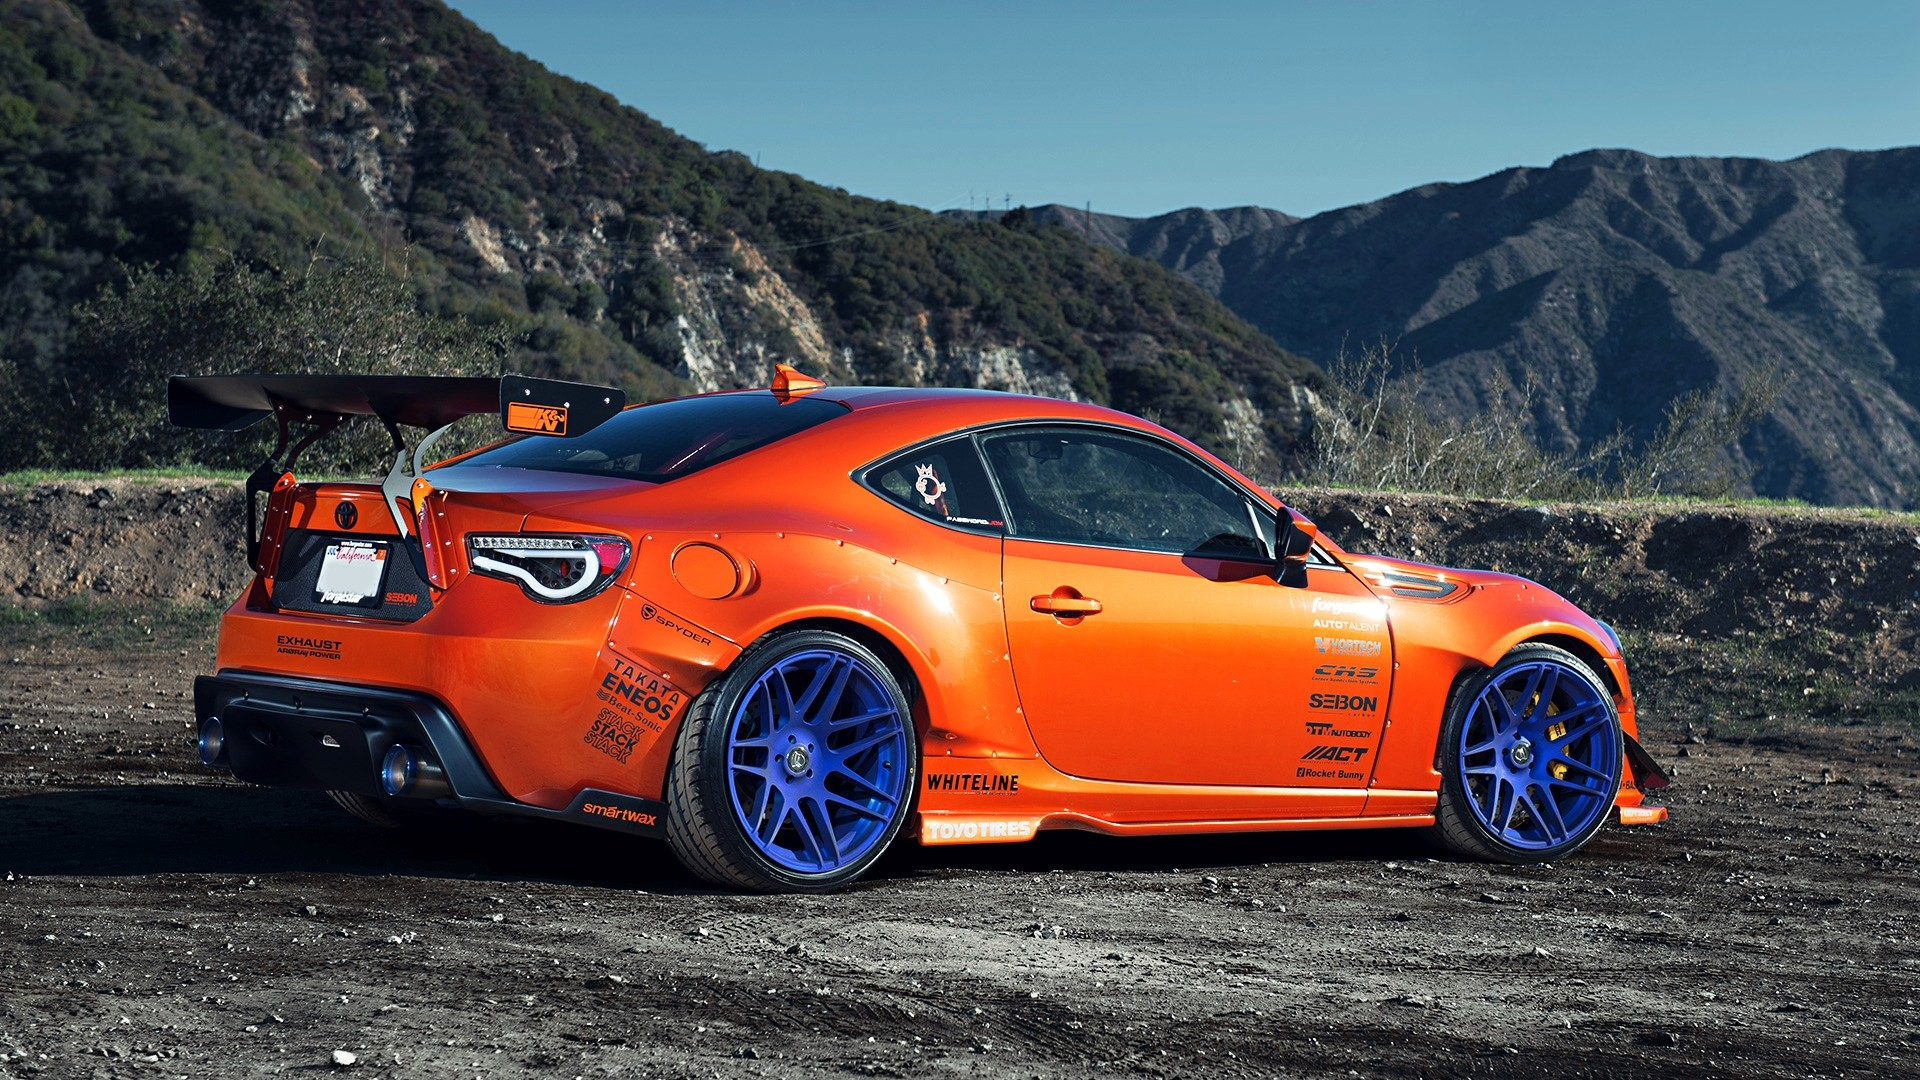 Scion Frs Wallpaper 1920x1080 76097